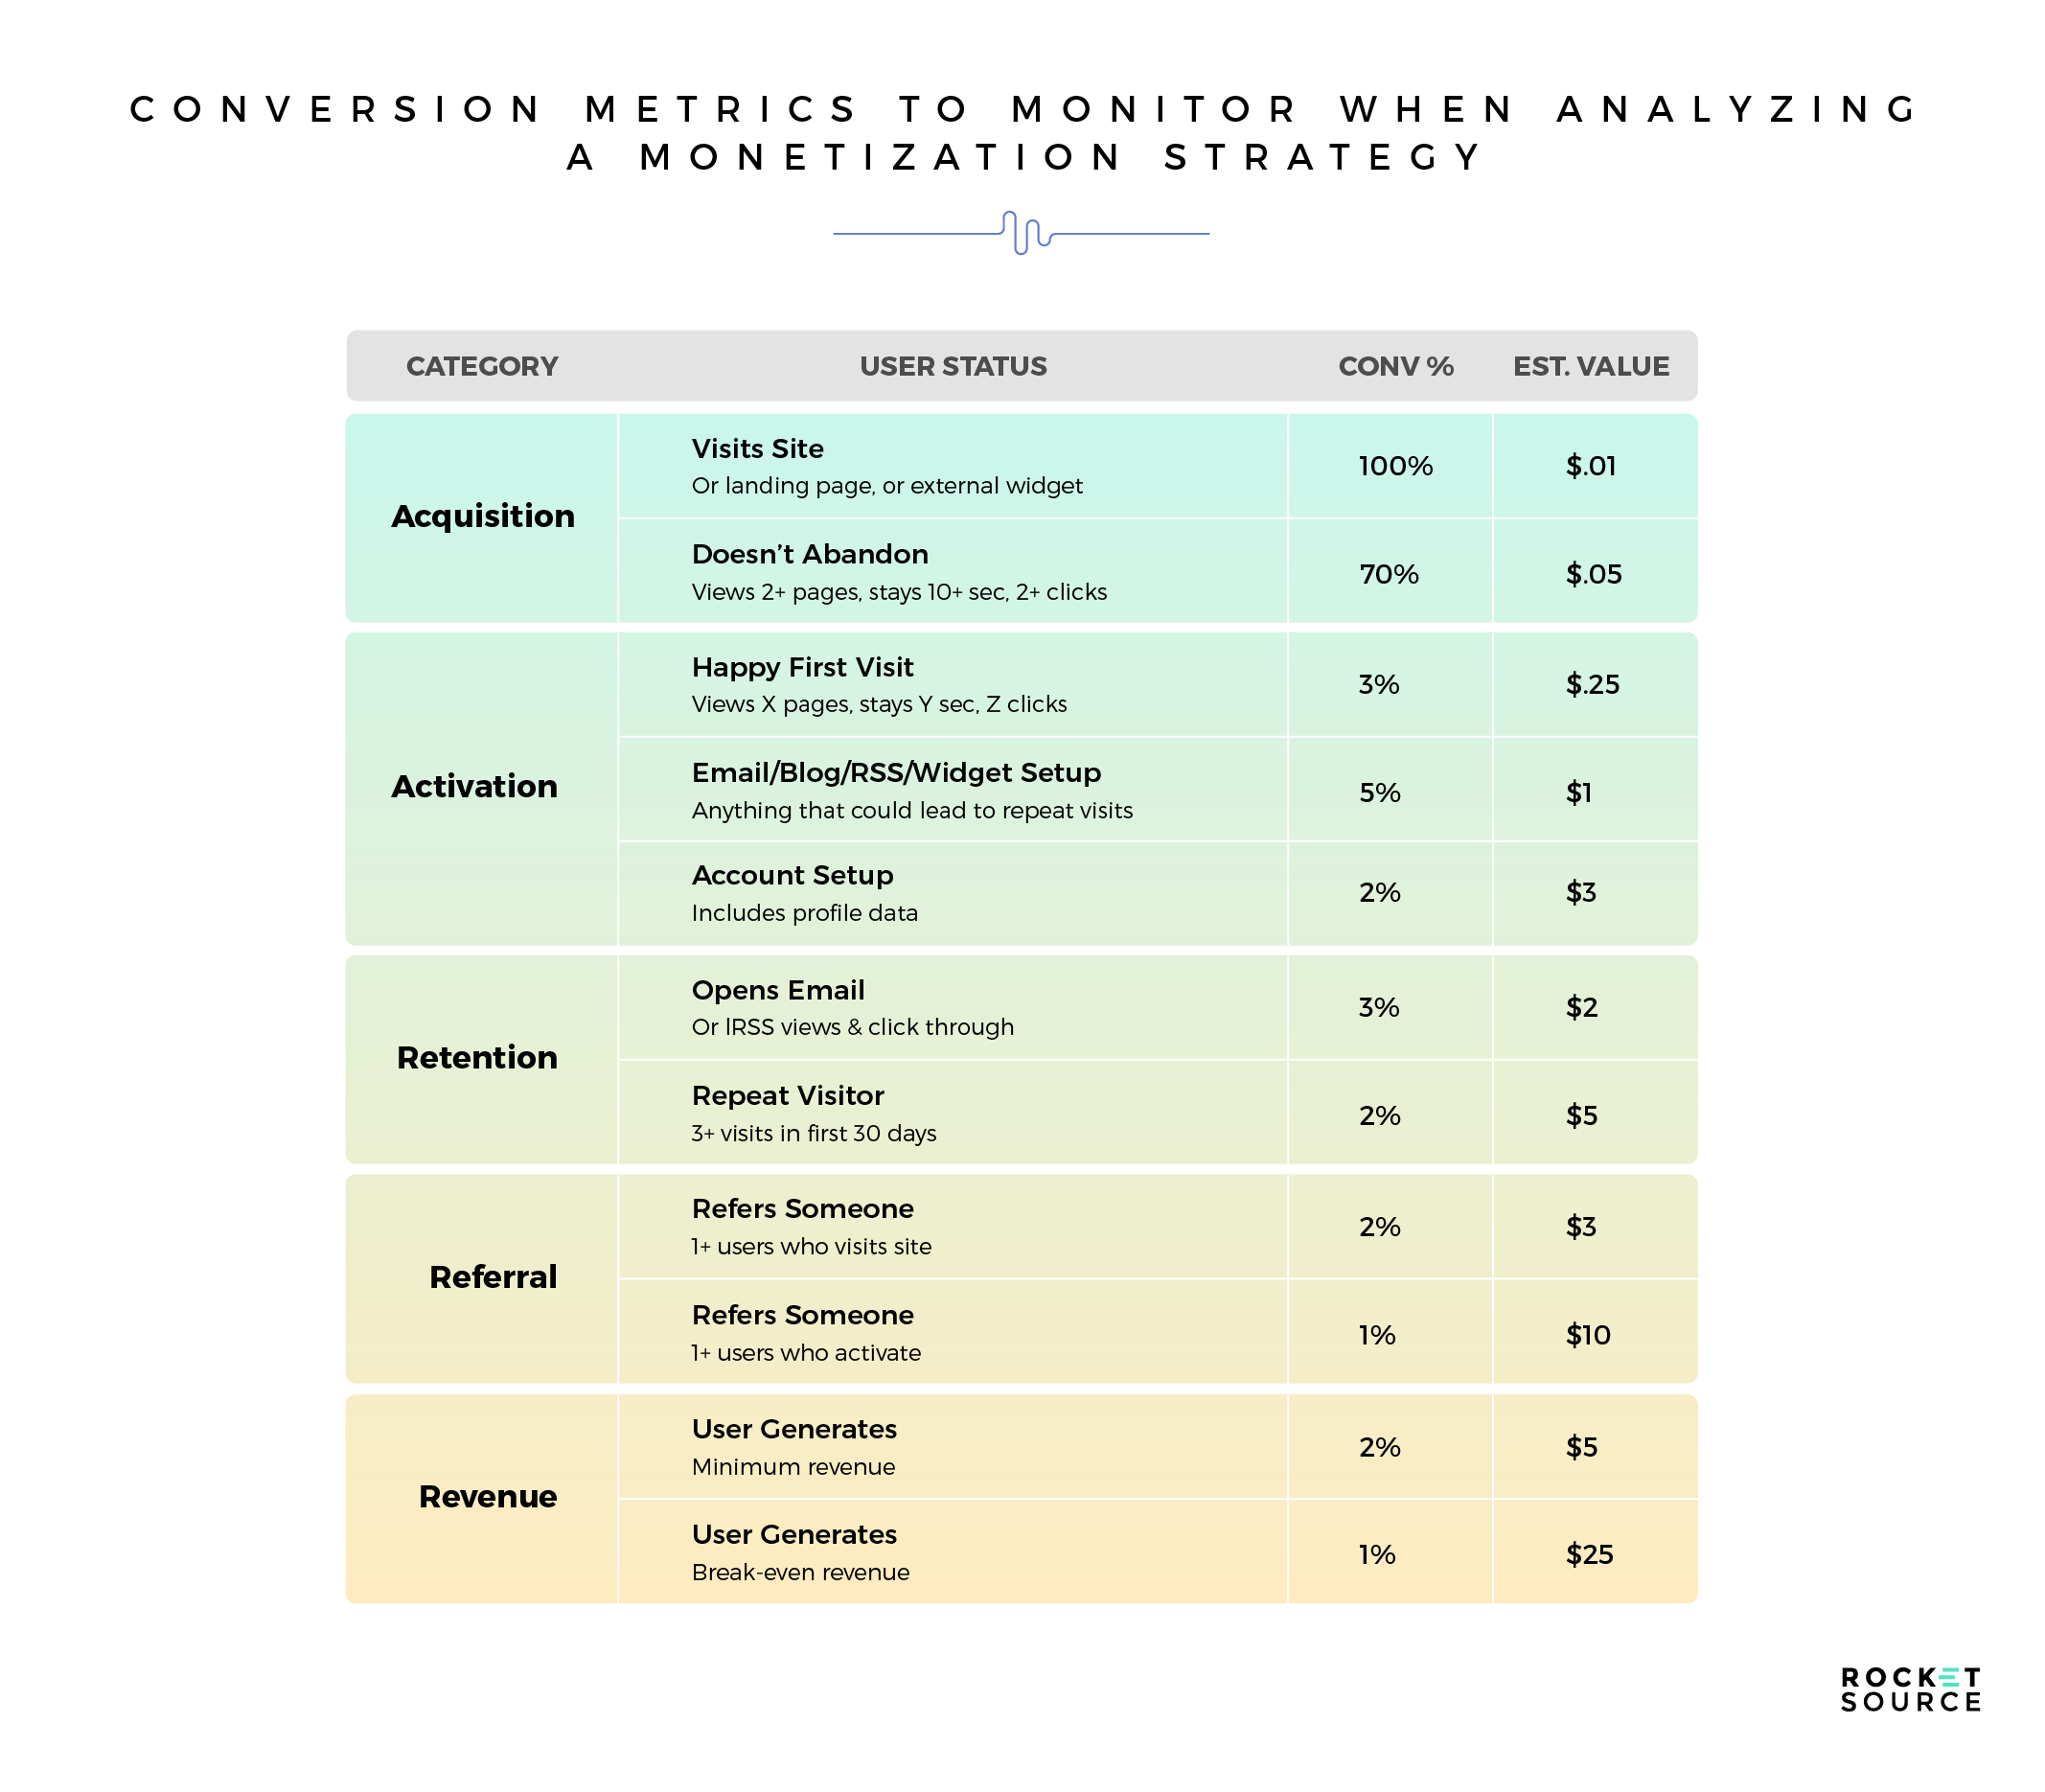 conversion metrics in monetization strategy